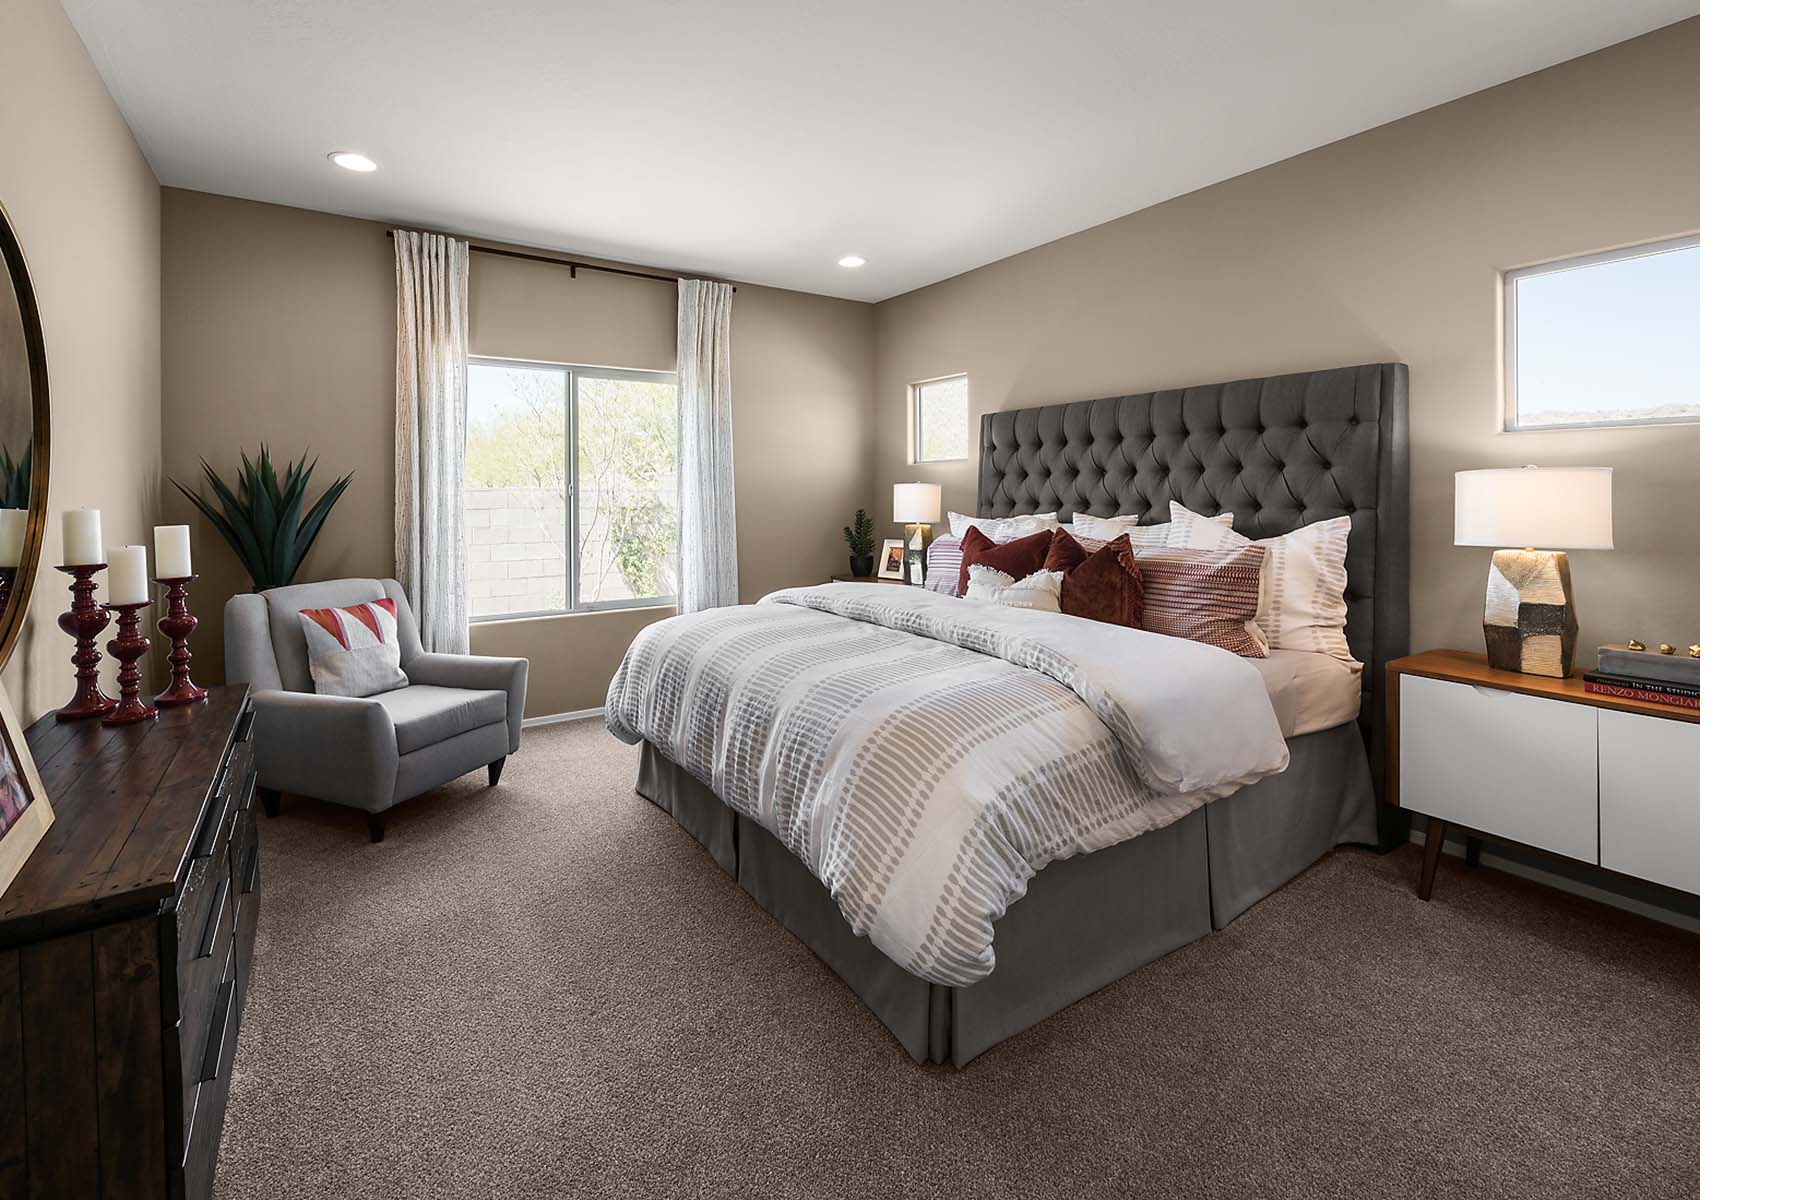 Benson Plan Bedroom at Solano at Sienna Hills in Buckeye Arizona by Mattamy Homes